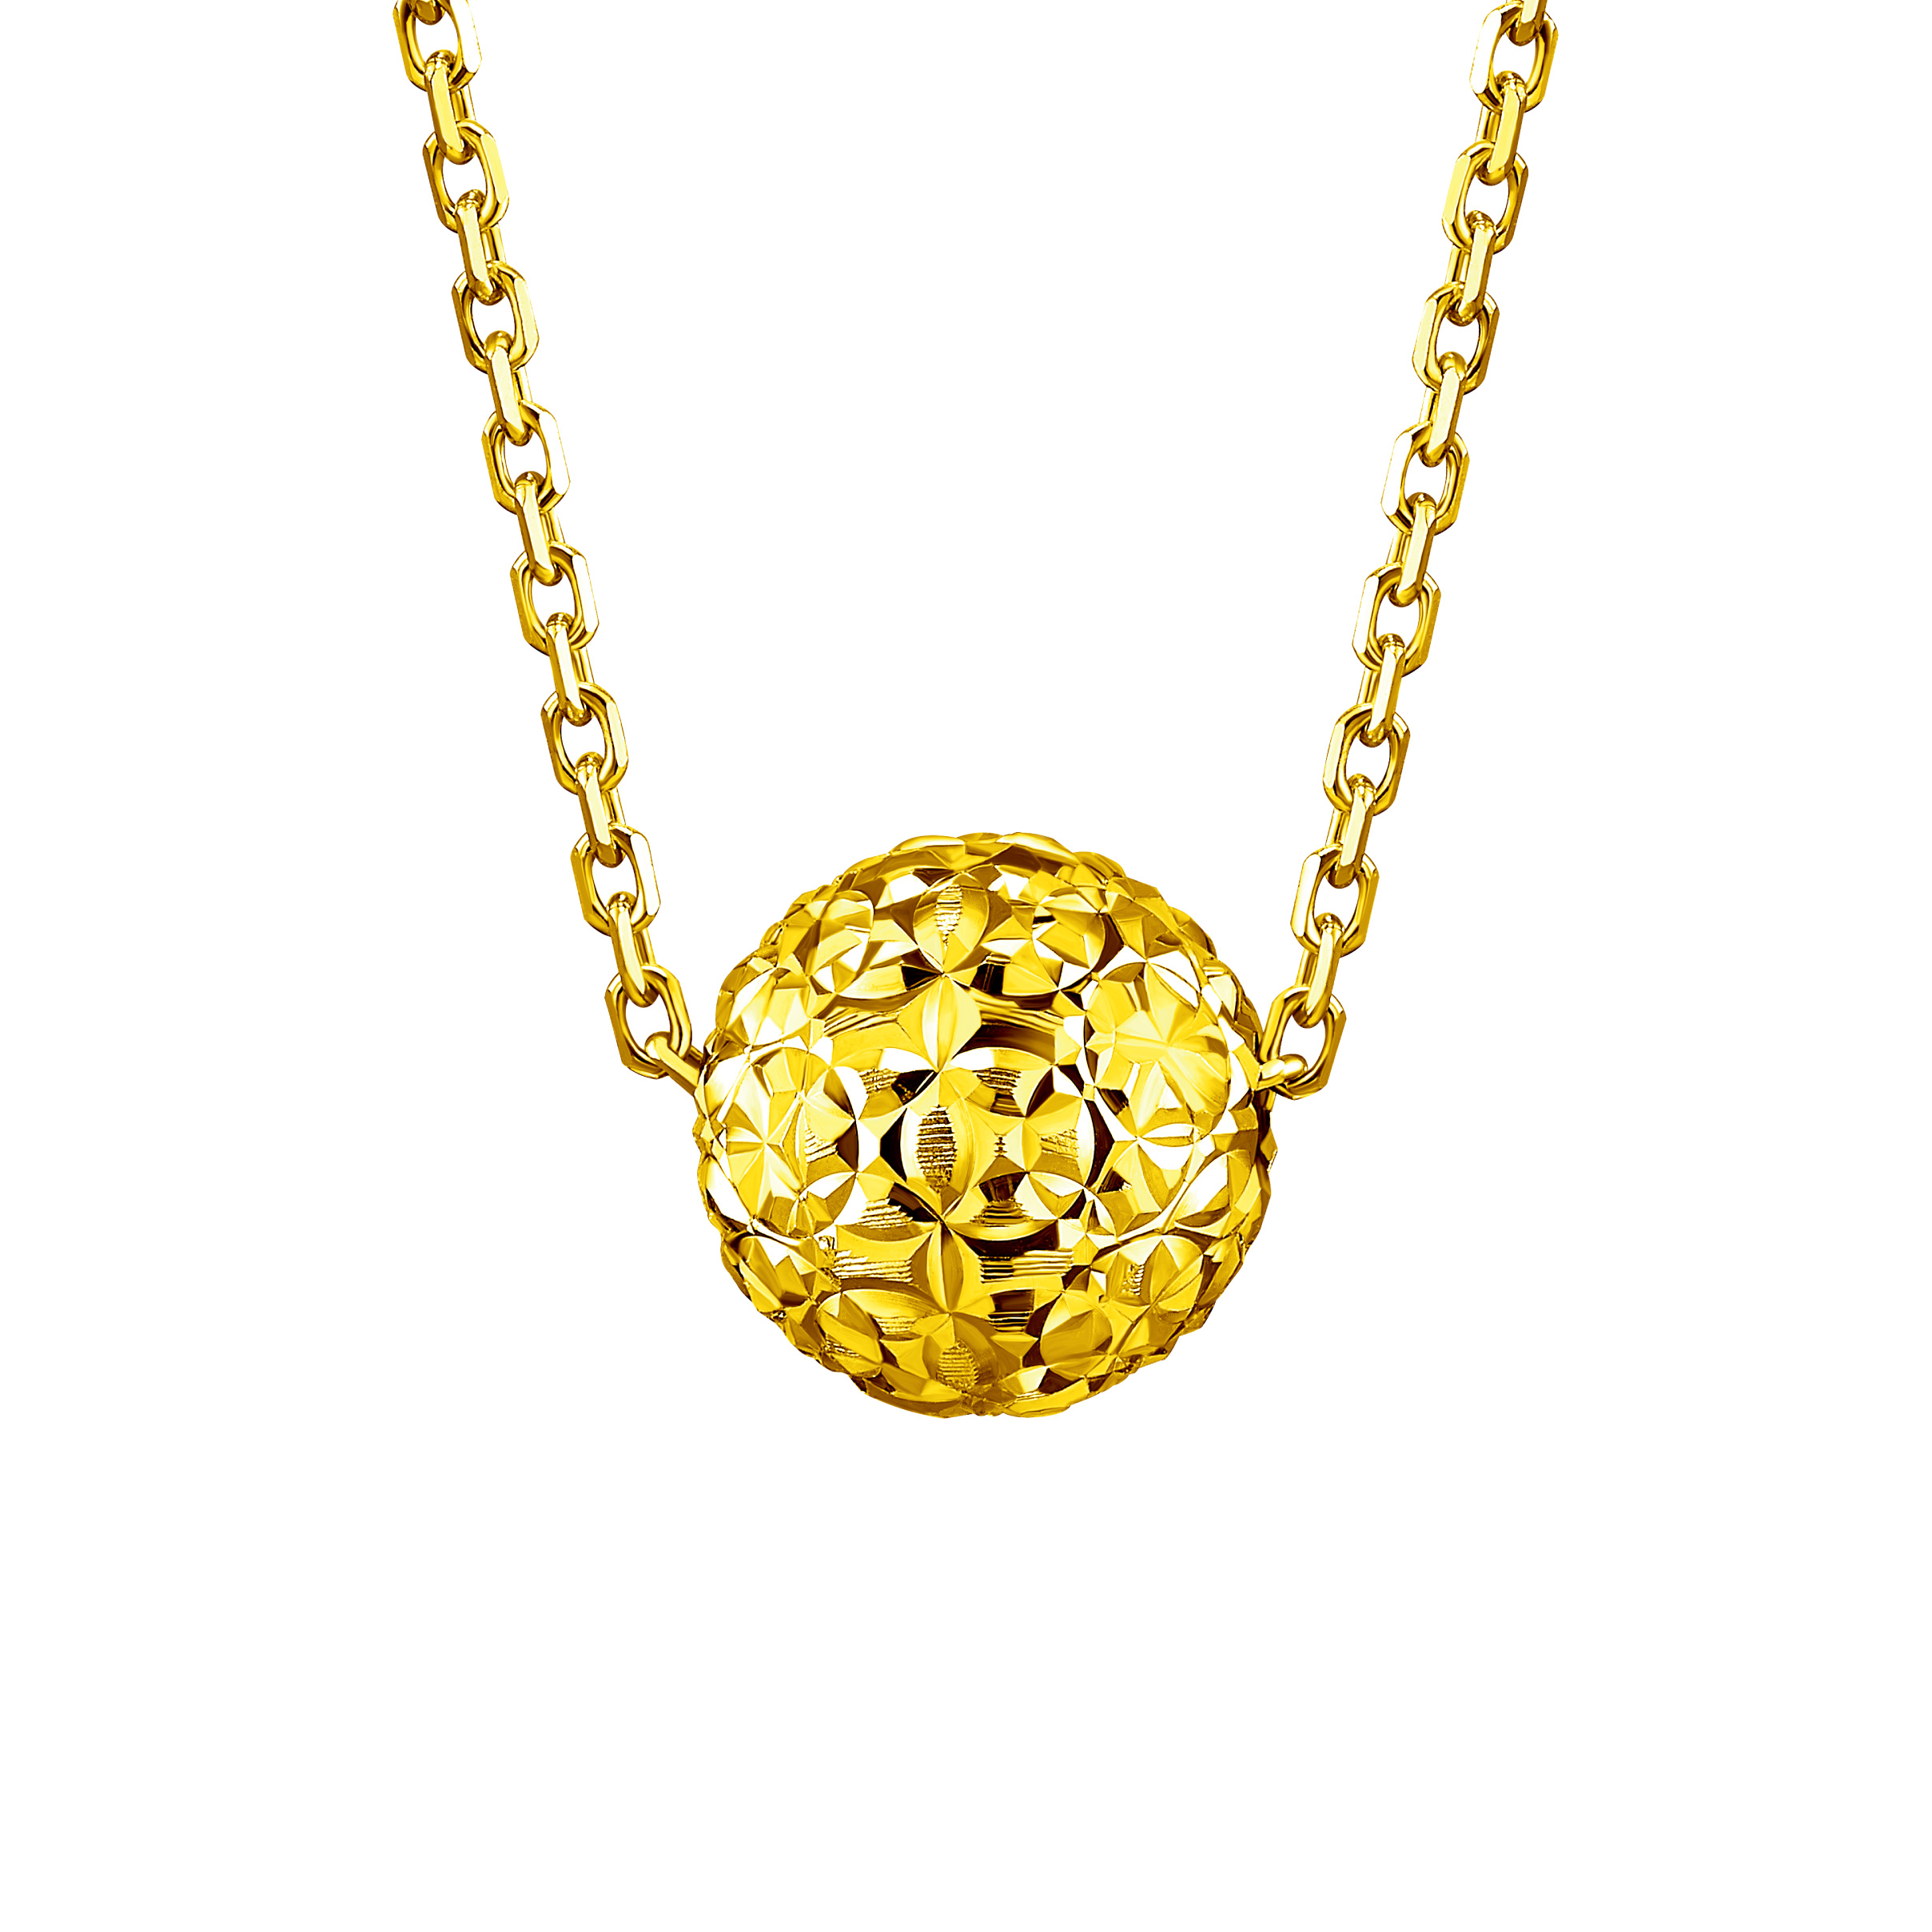 Goldstyle「治癒星球」Necklace